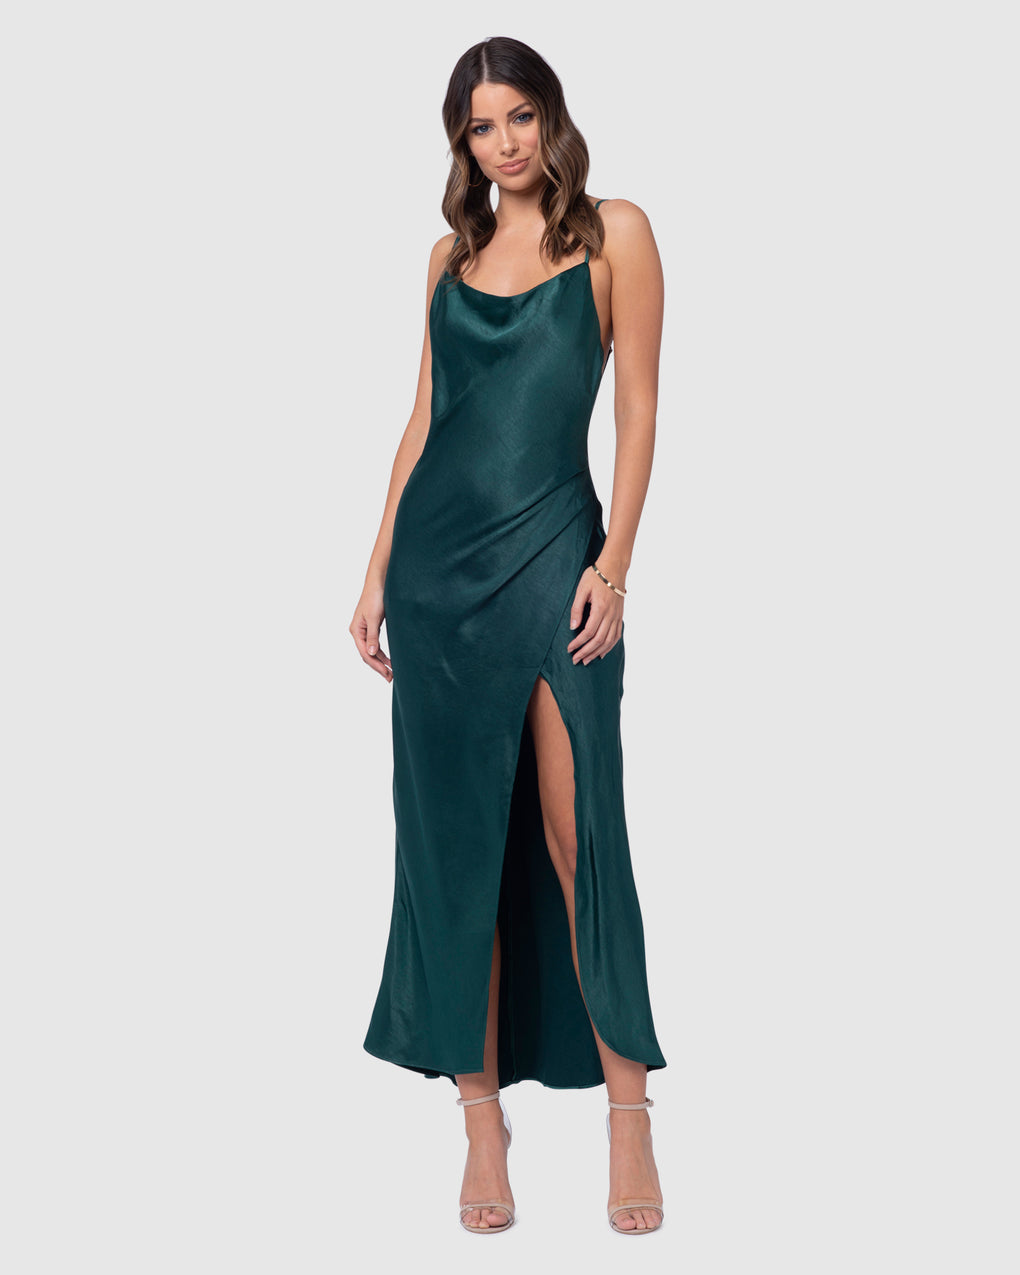 Aurora Satin Dress